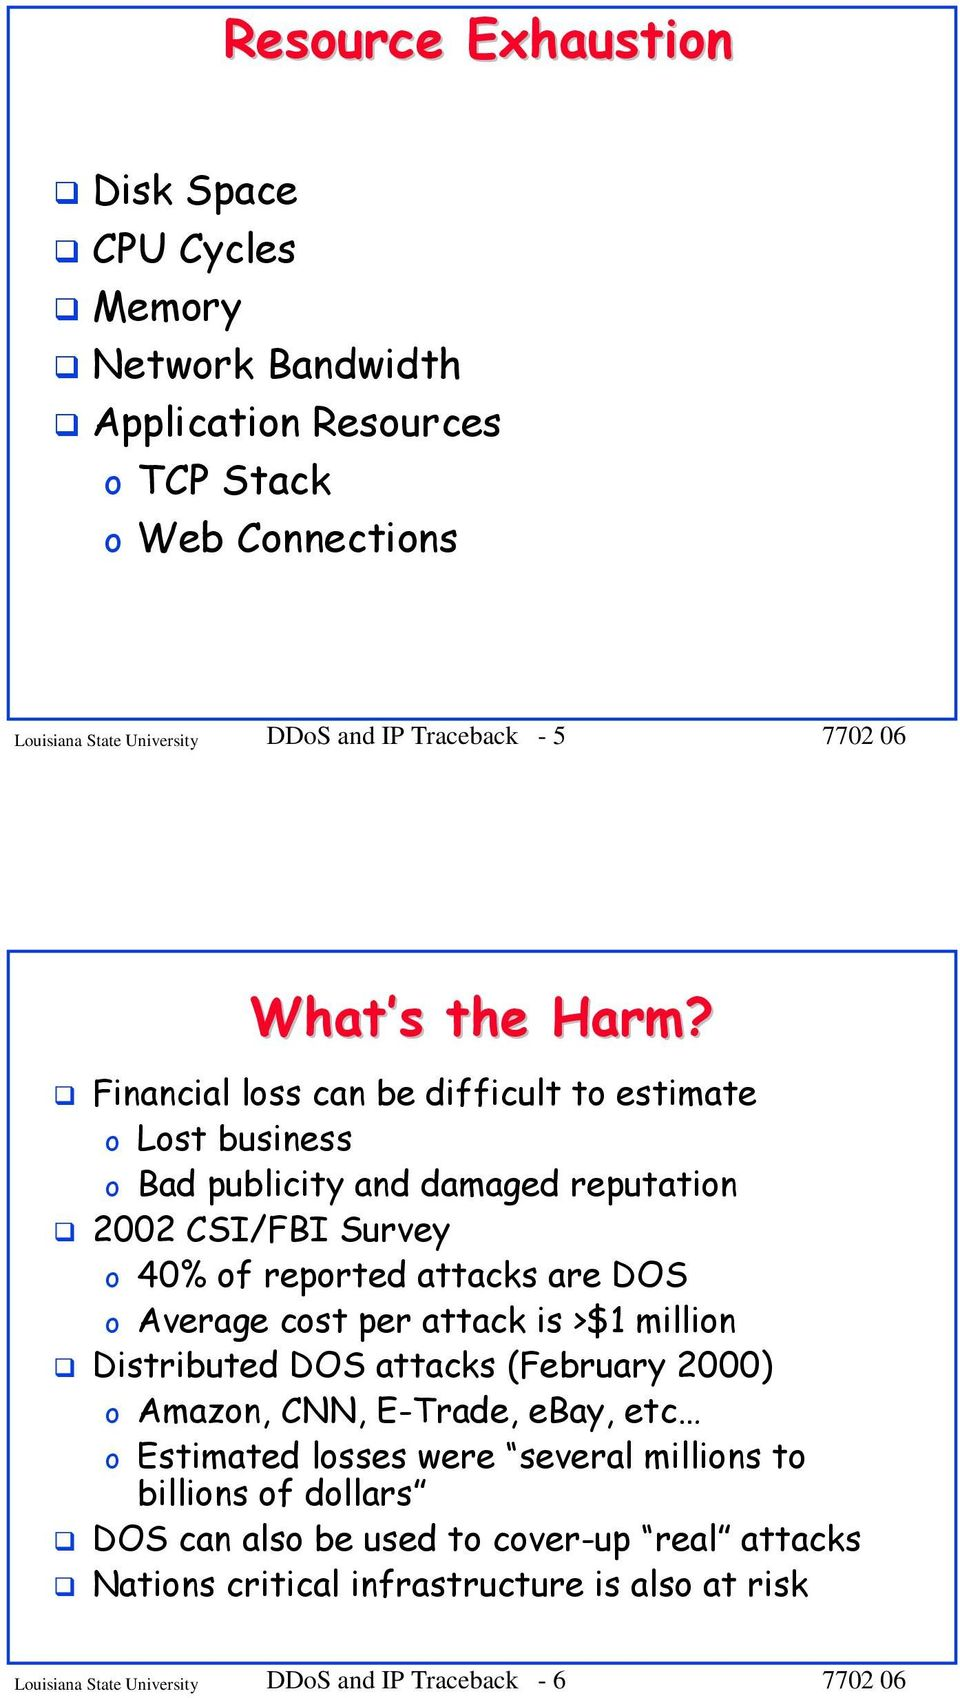 Financial loss can be difficult to estimate o Lost business o Bad publicity and damaged reputation 2002 CSI/FBI Survey o 40% of reported attacks are DOS o Average cost